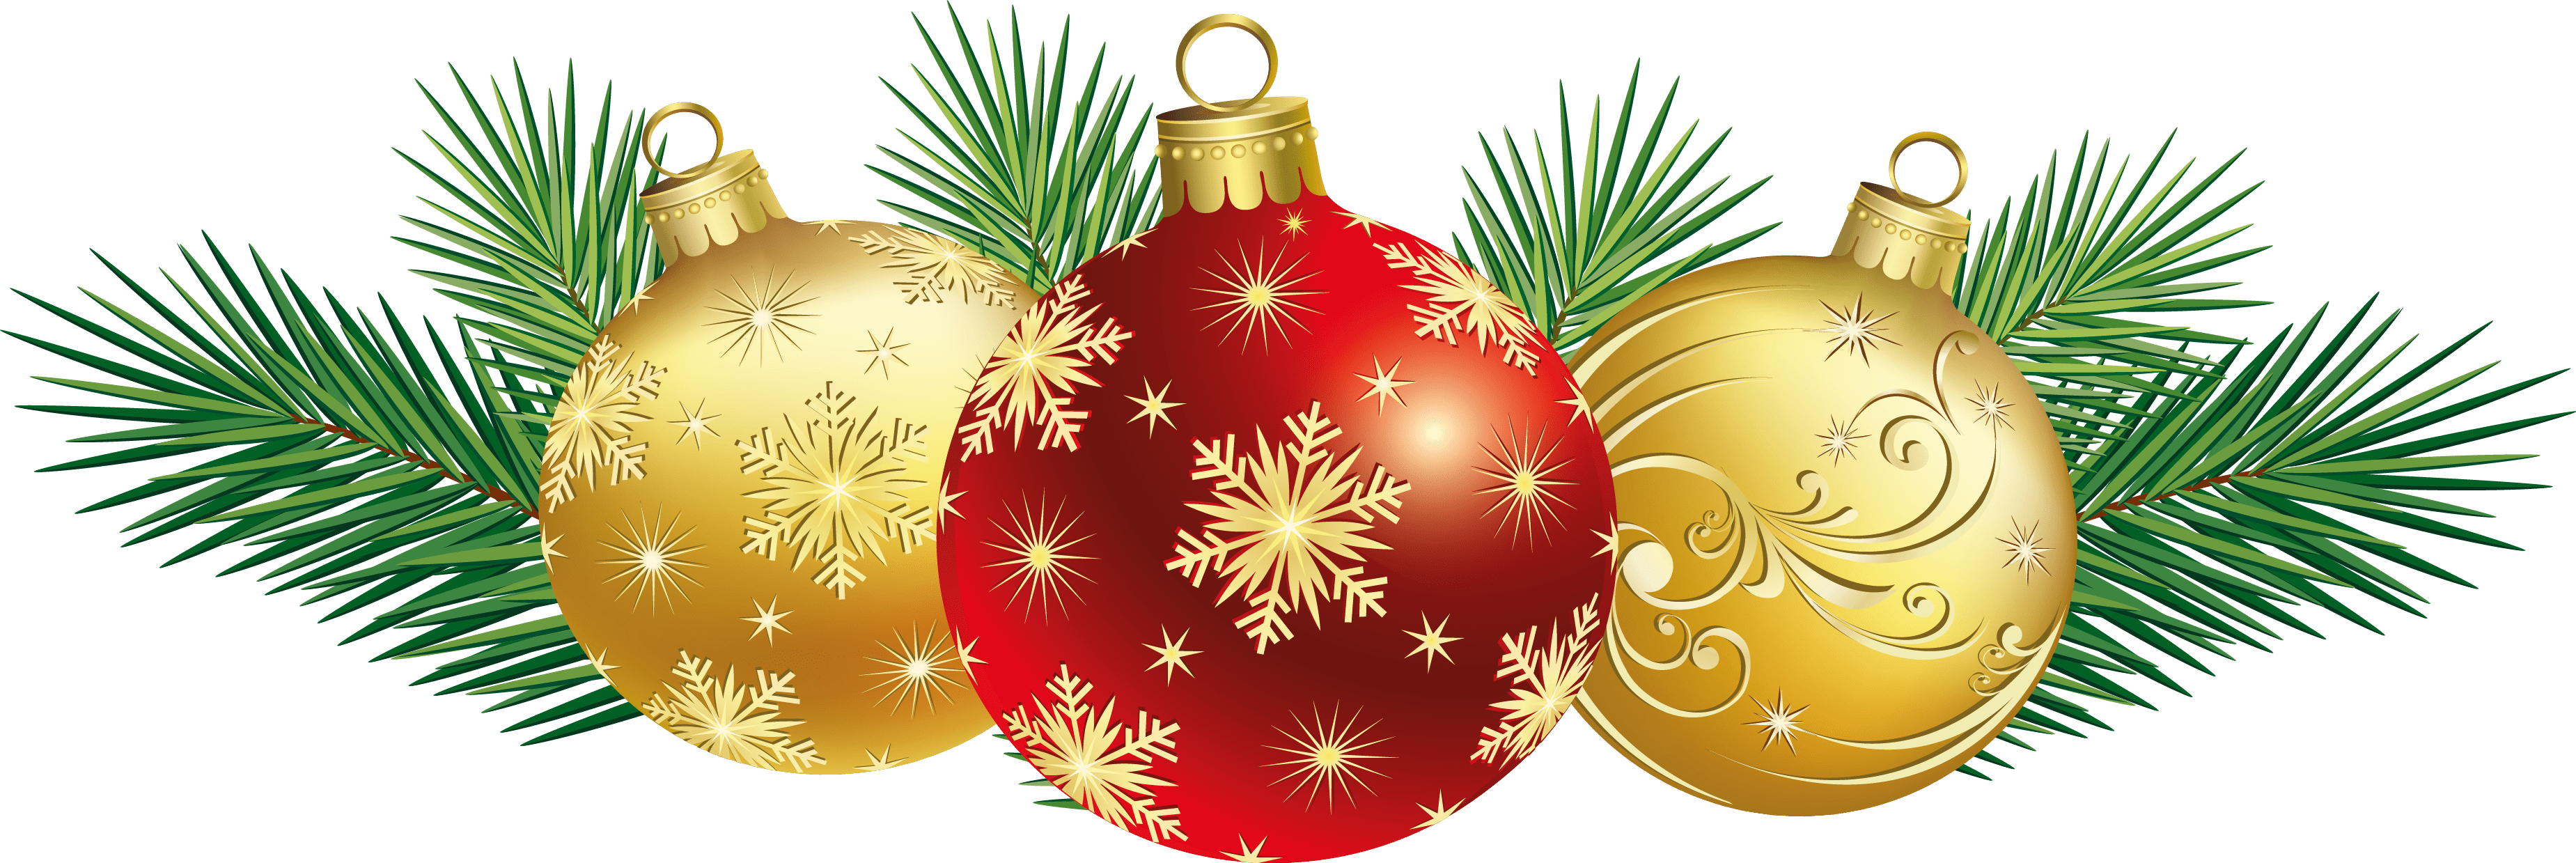 Free clipart images christmas clip art royalty free stock Free Clipart Christmas Decorations – Merry Christmas And Happy New ... clip art royalty free stock